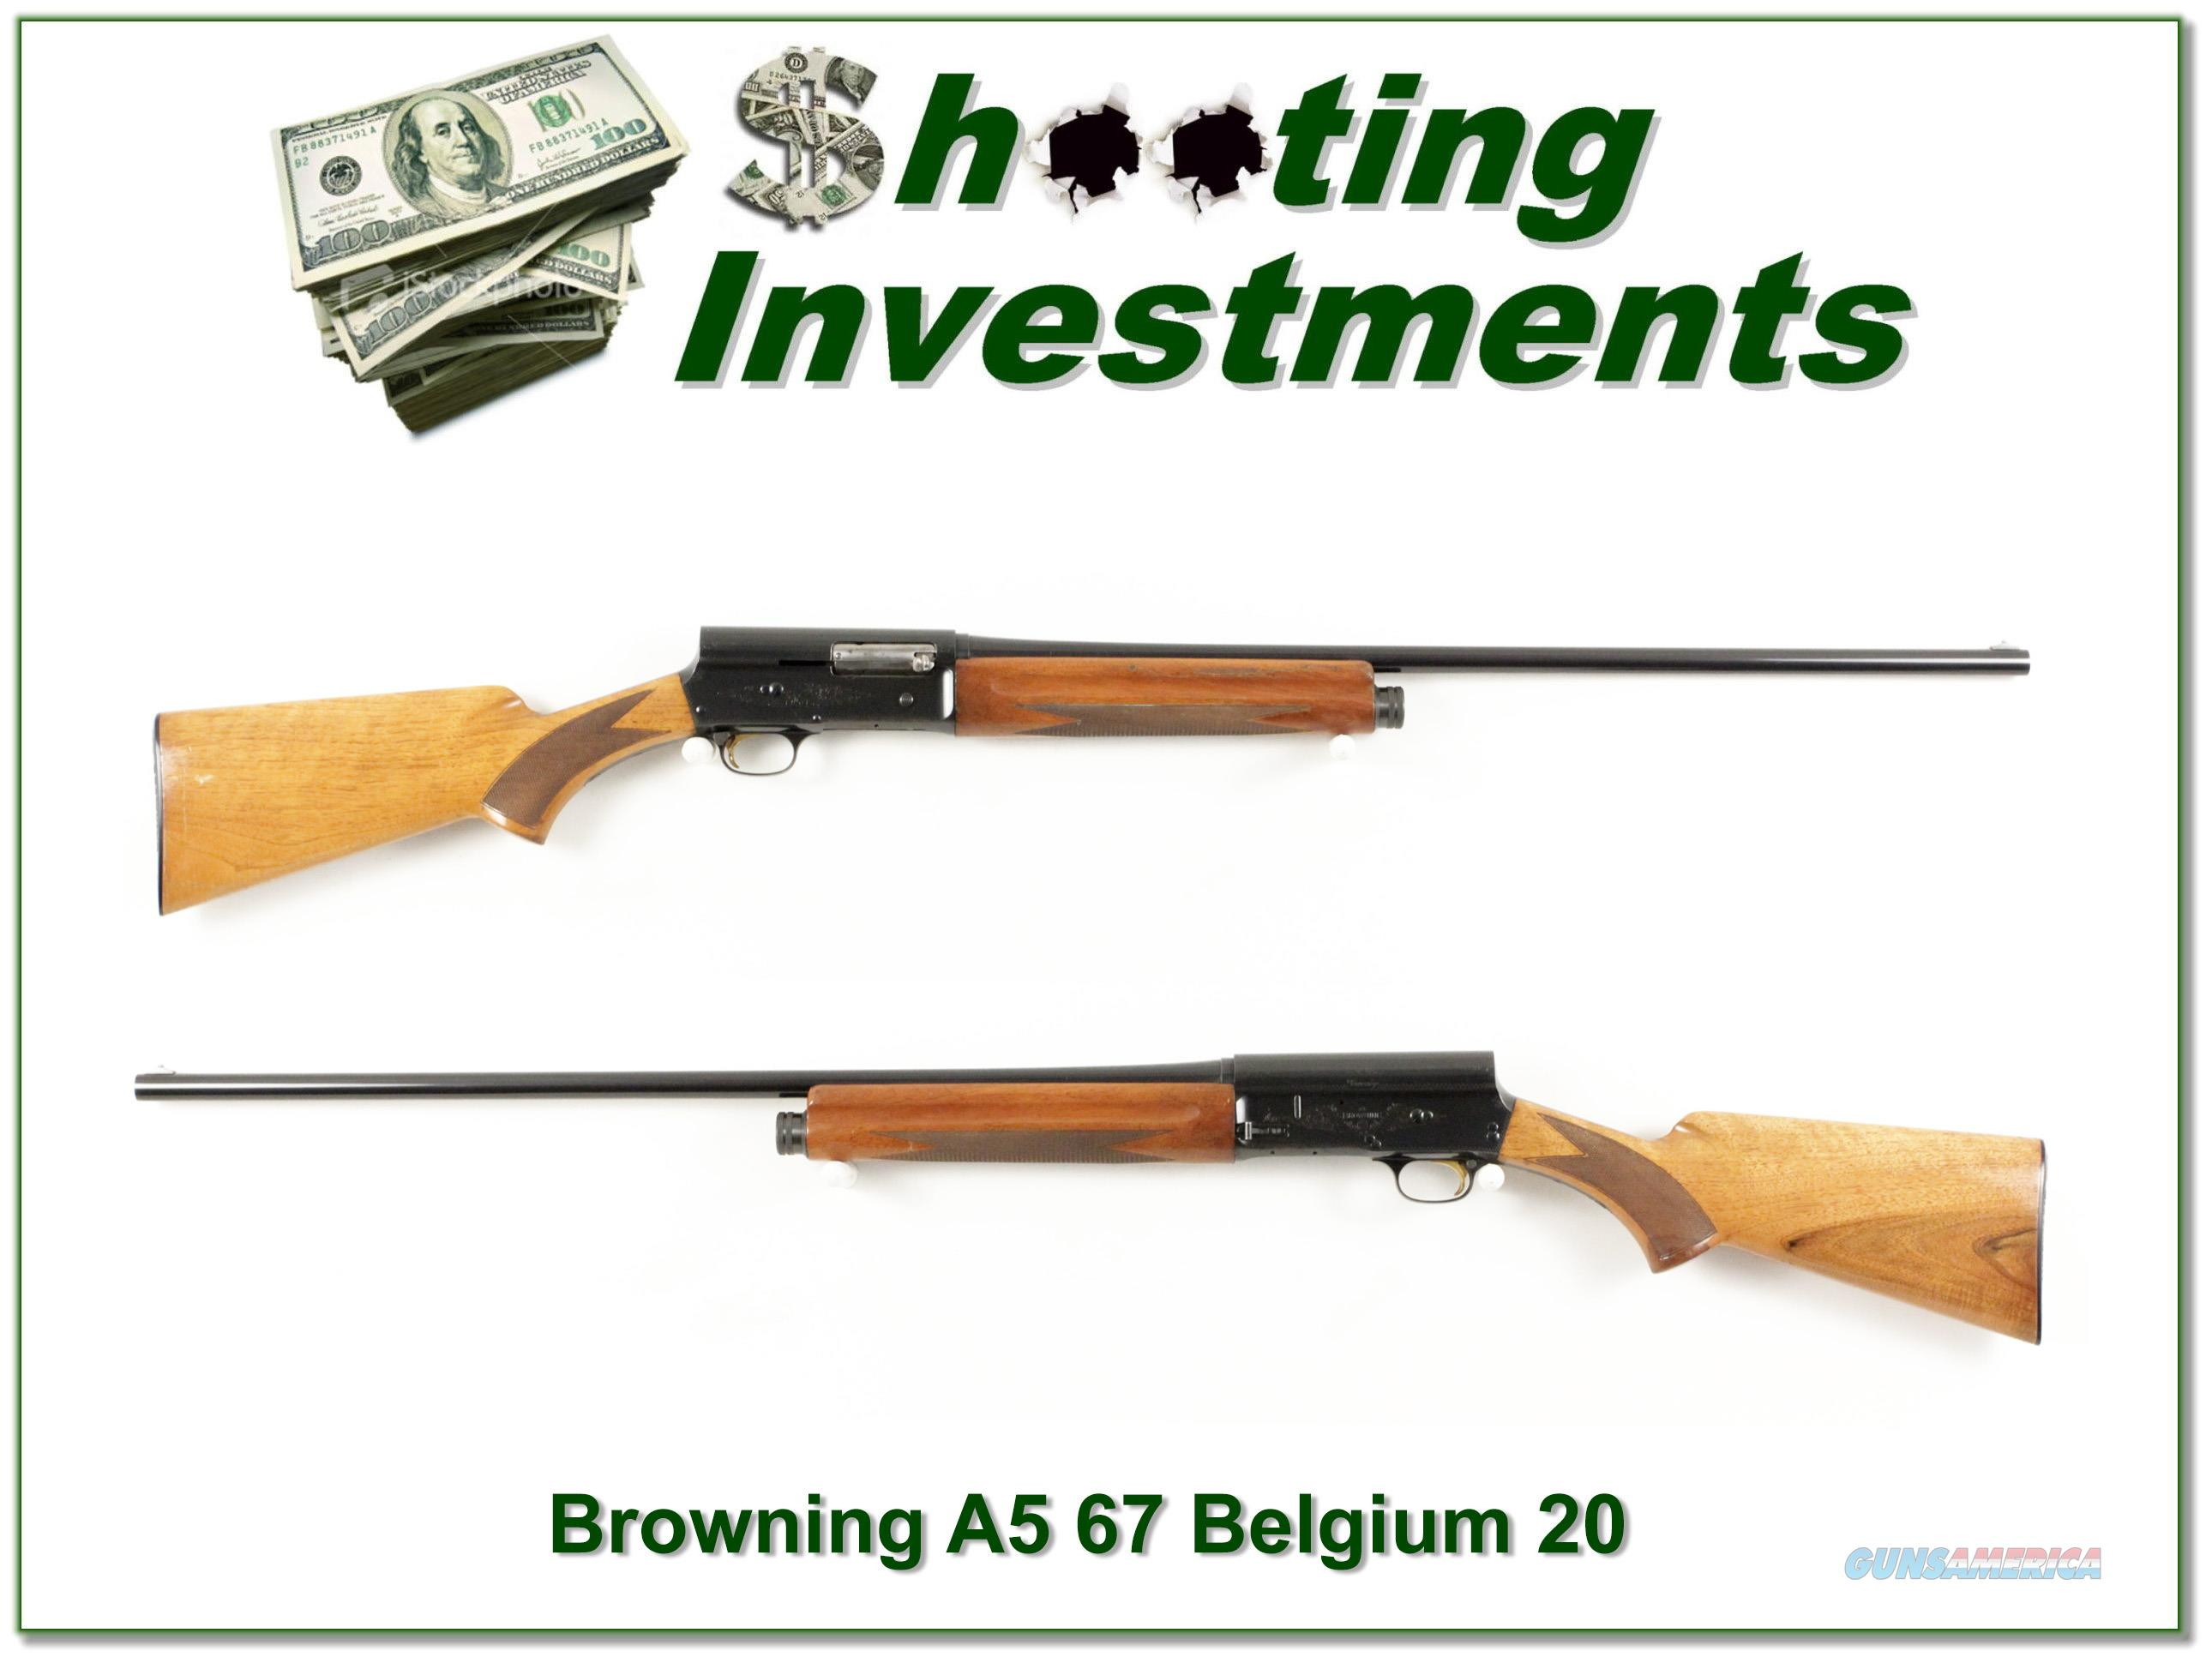 Browning A5 20 Gauge 67 Belgium blond!  Guns > Shotguns > Browning Shotguns > Autoloaders > Hunting